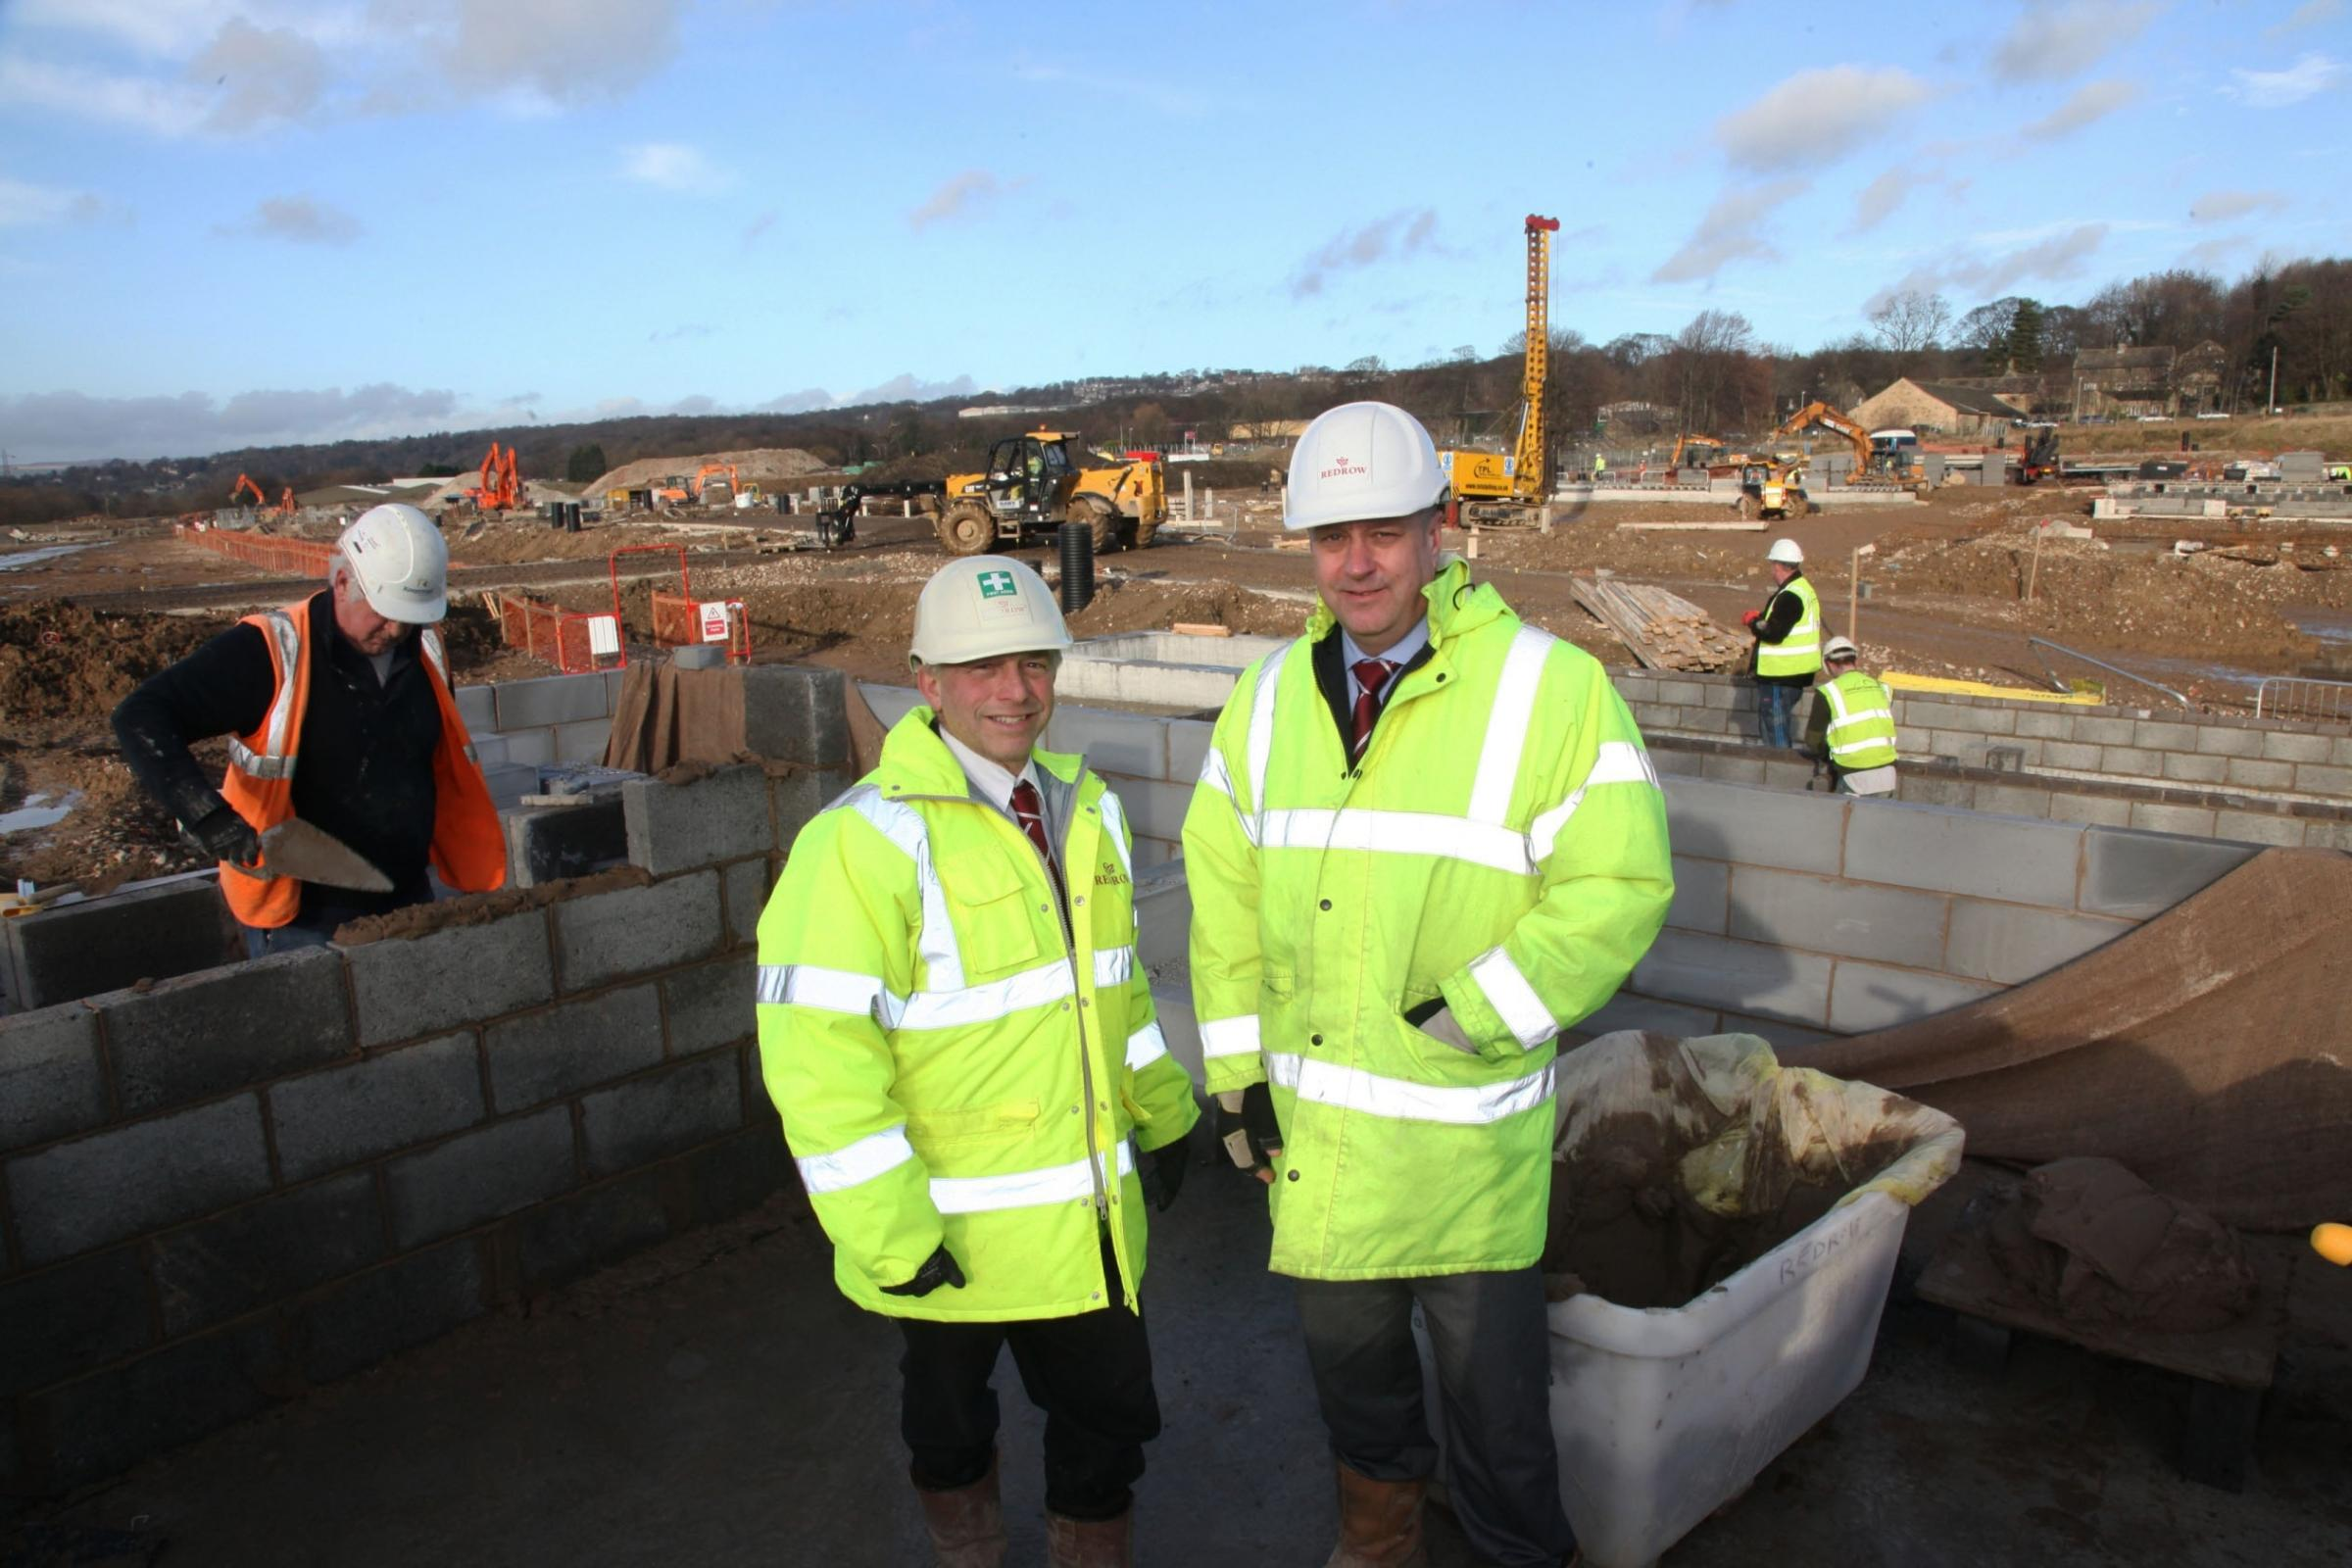 Shaun Johnson and John Grime on site at the Clariant development